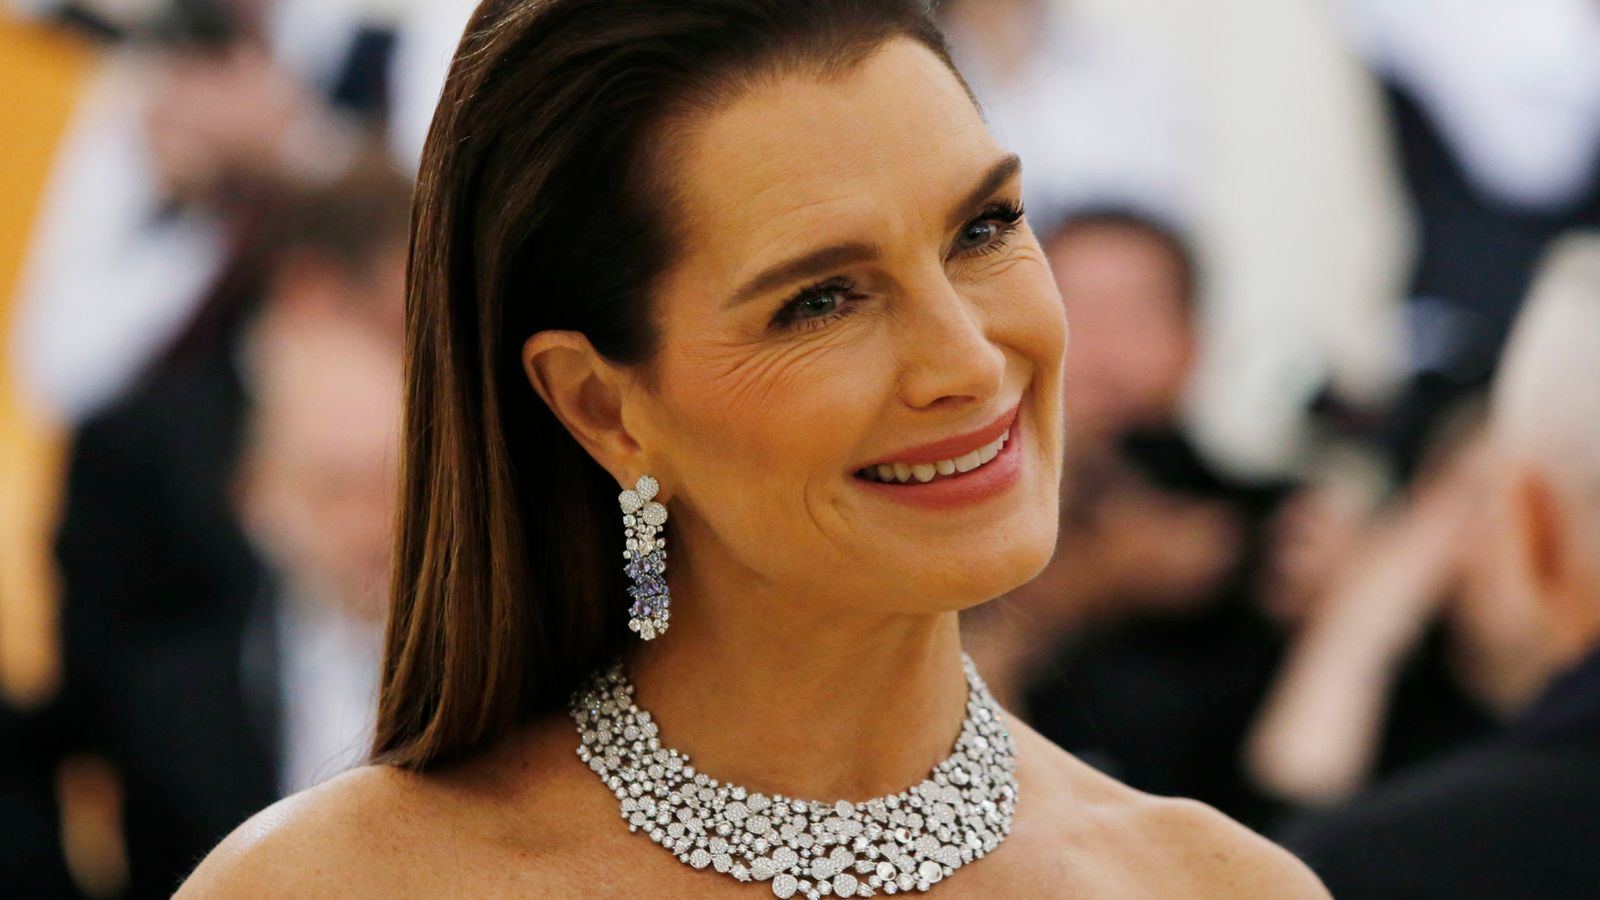 Brooke shields sues british company over eyebrow pencil in